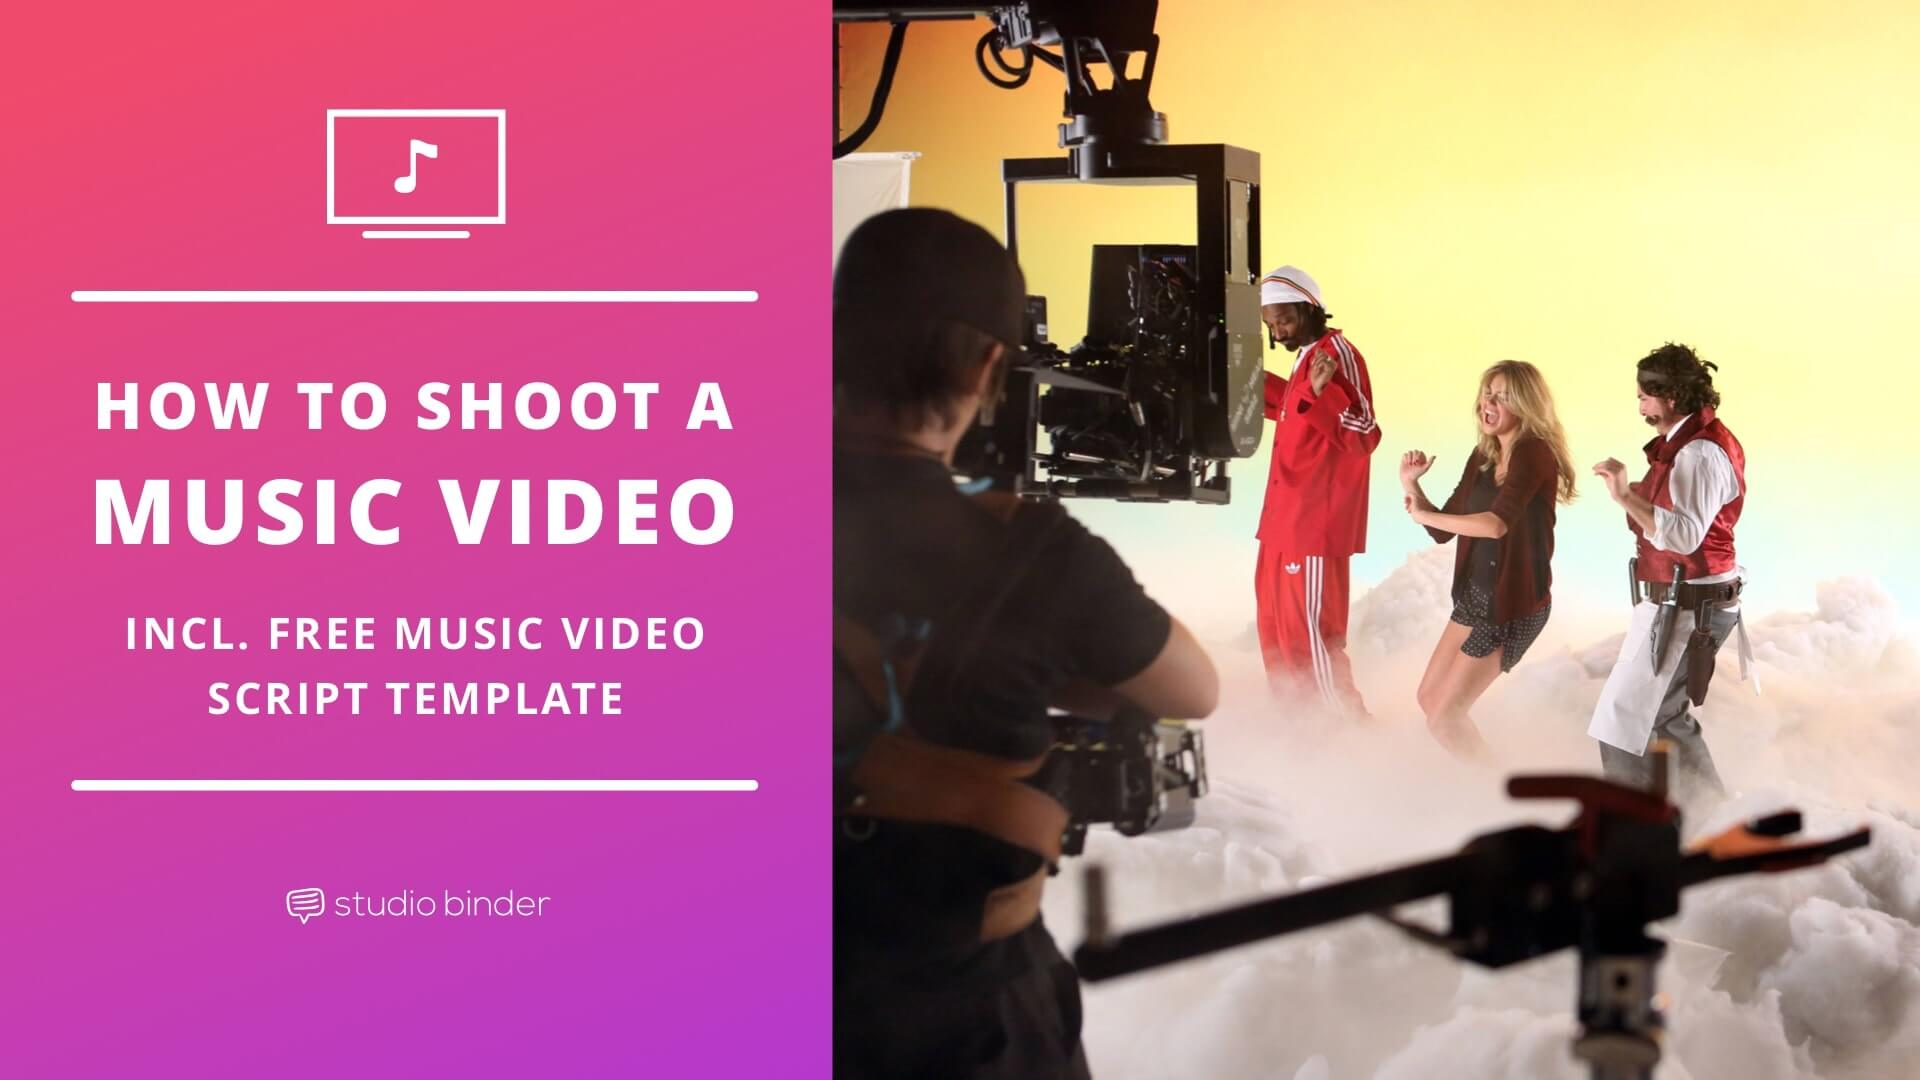 How To Shoot A Music Video (With Free Music Video Script Template) -  Featured